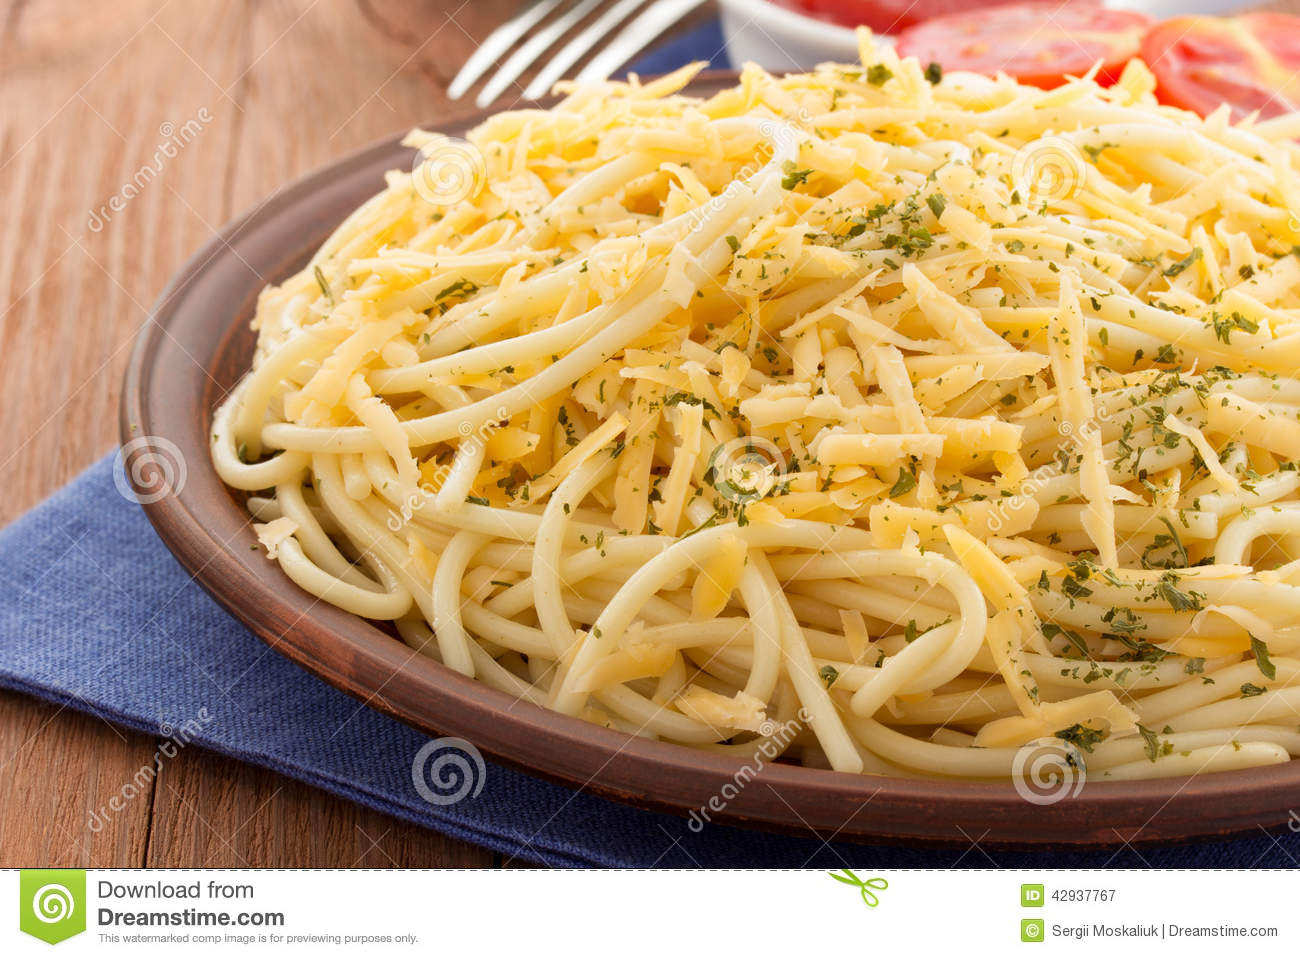 ? Difference between spaghetti and macaroni. What's the Difference Between Rice Noodles and Pasta?. 2019-01-13